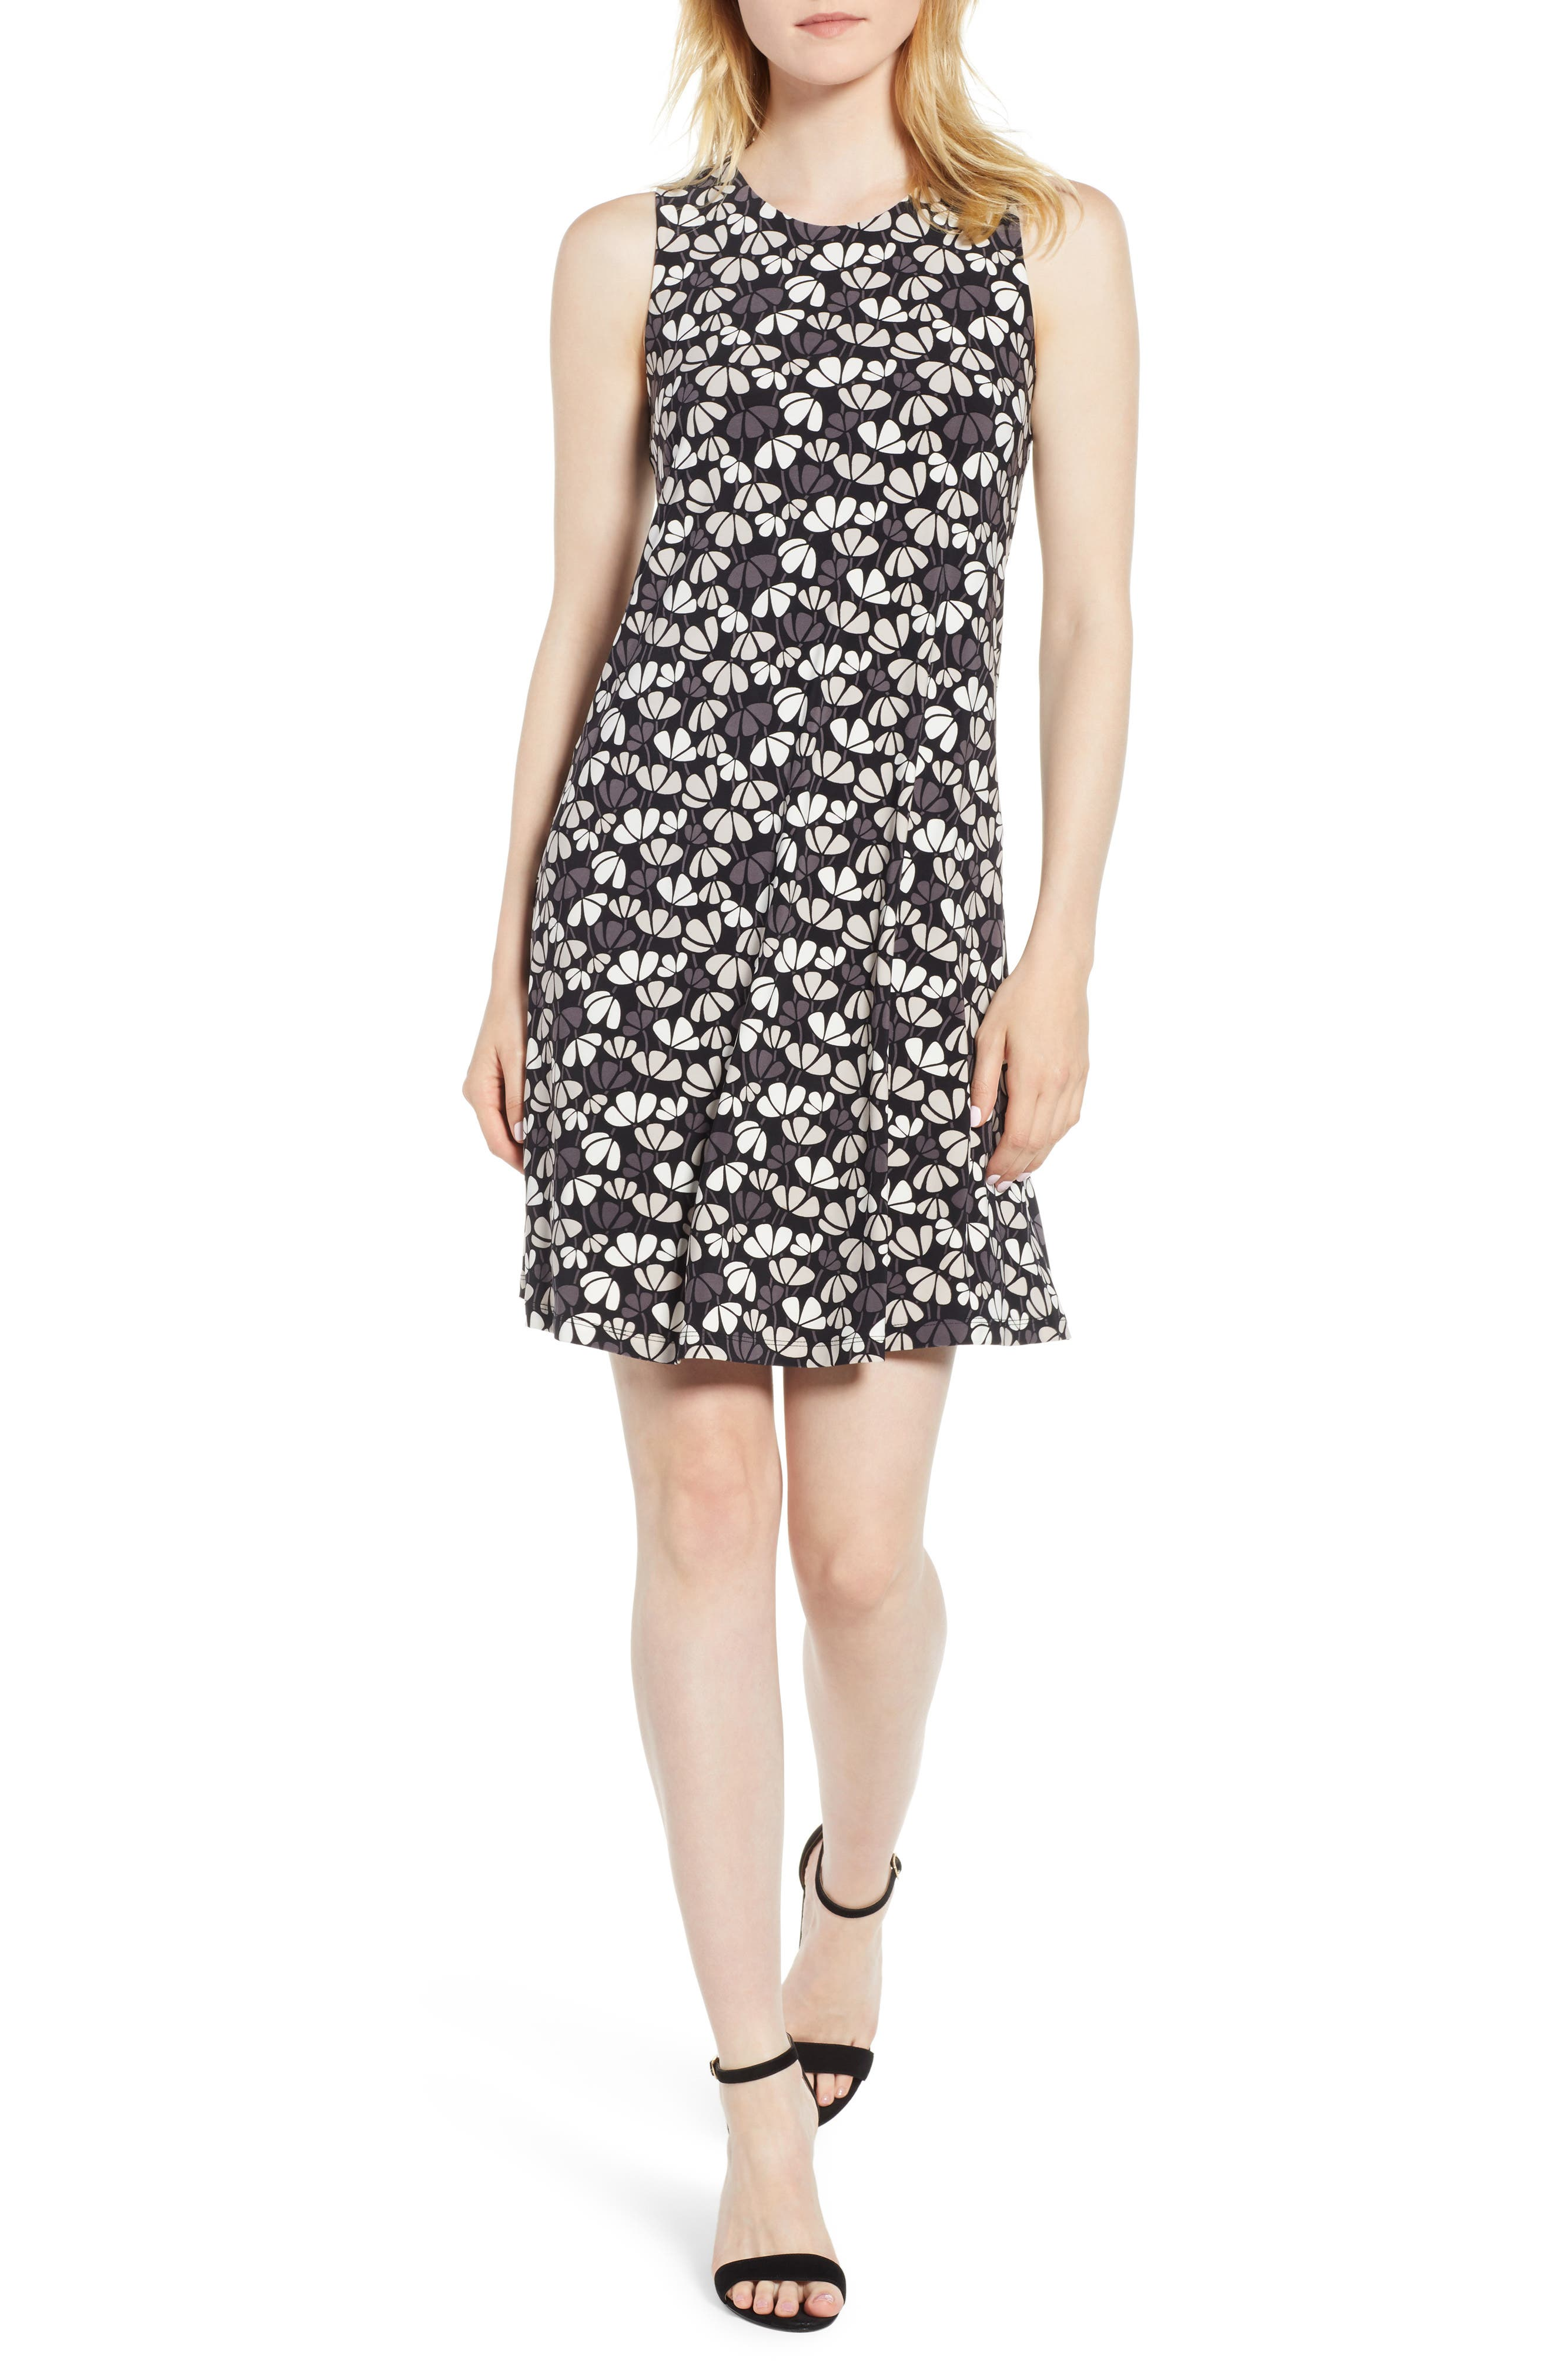 Anne Klein Flowerfall Stretch Knit Swing Dress